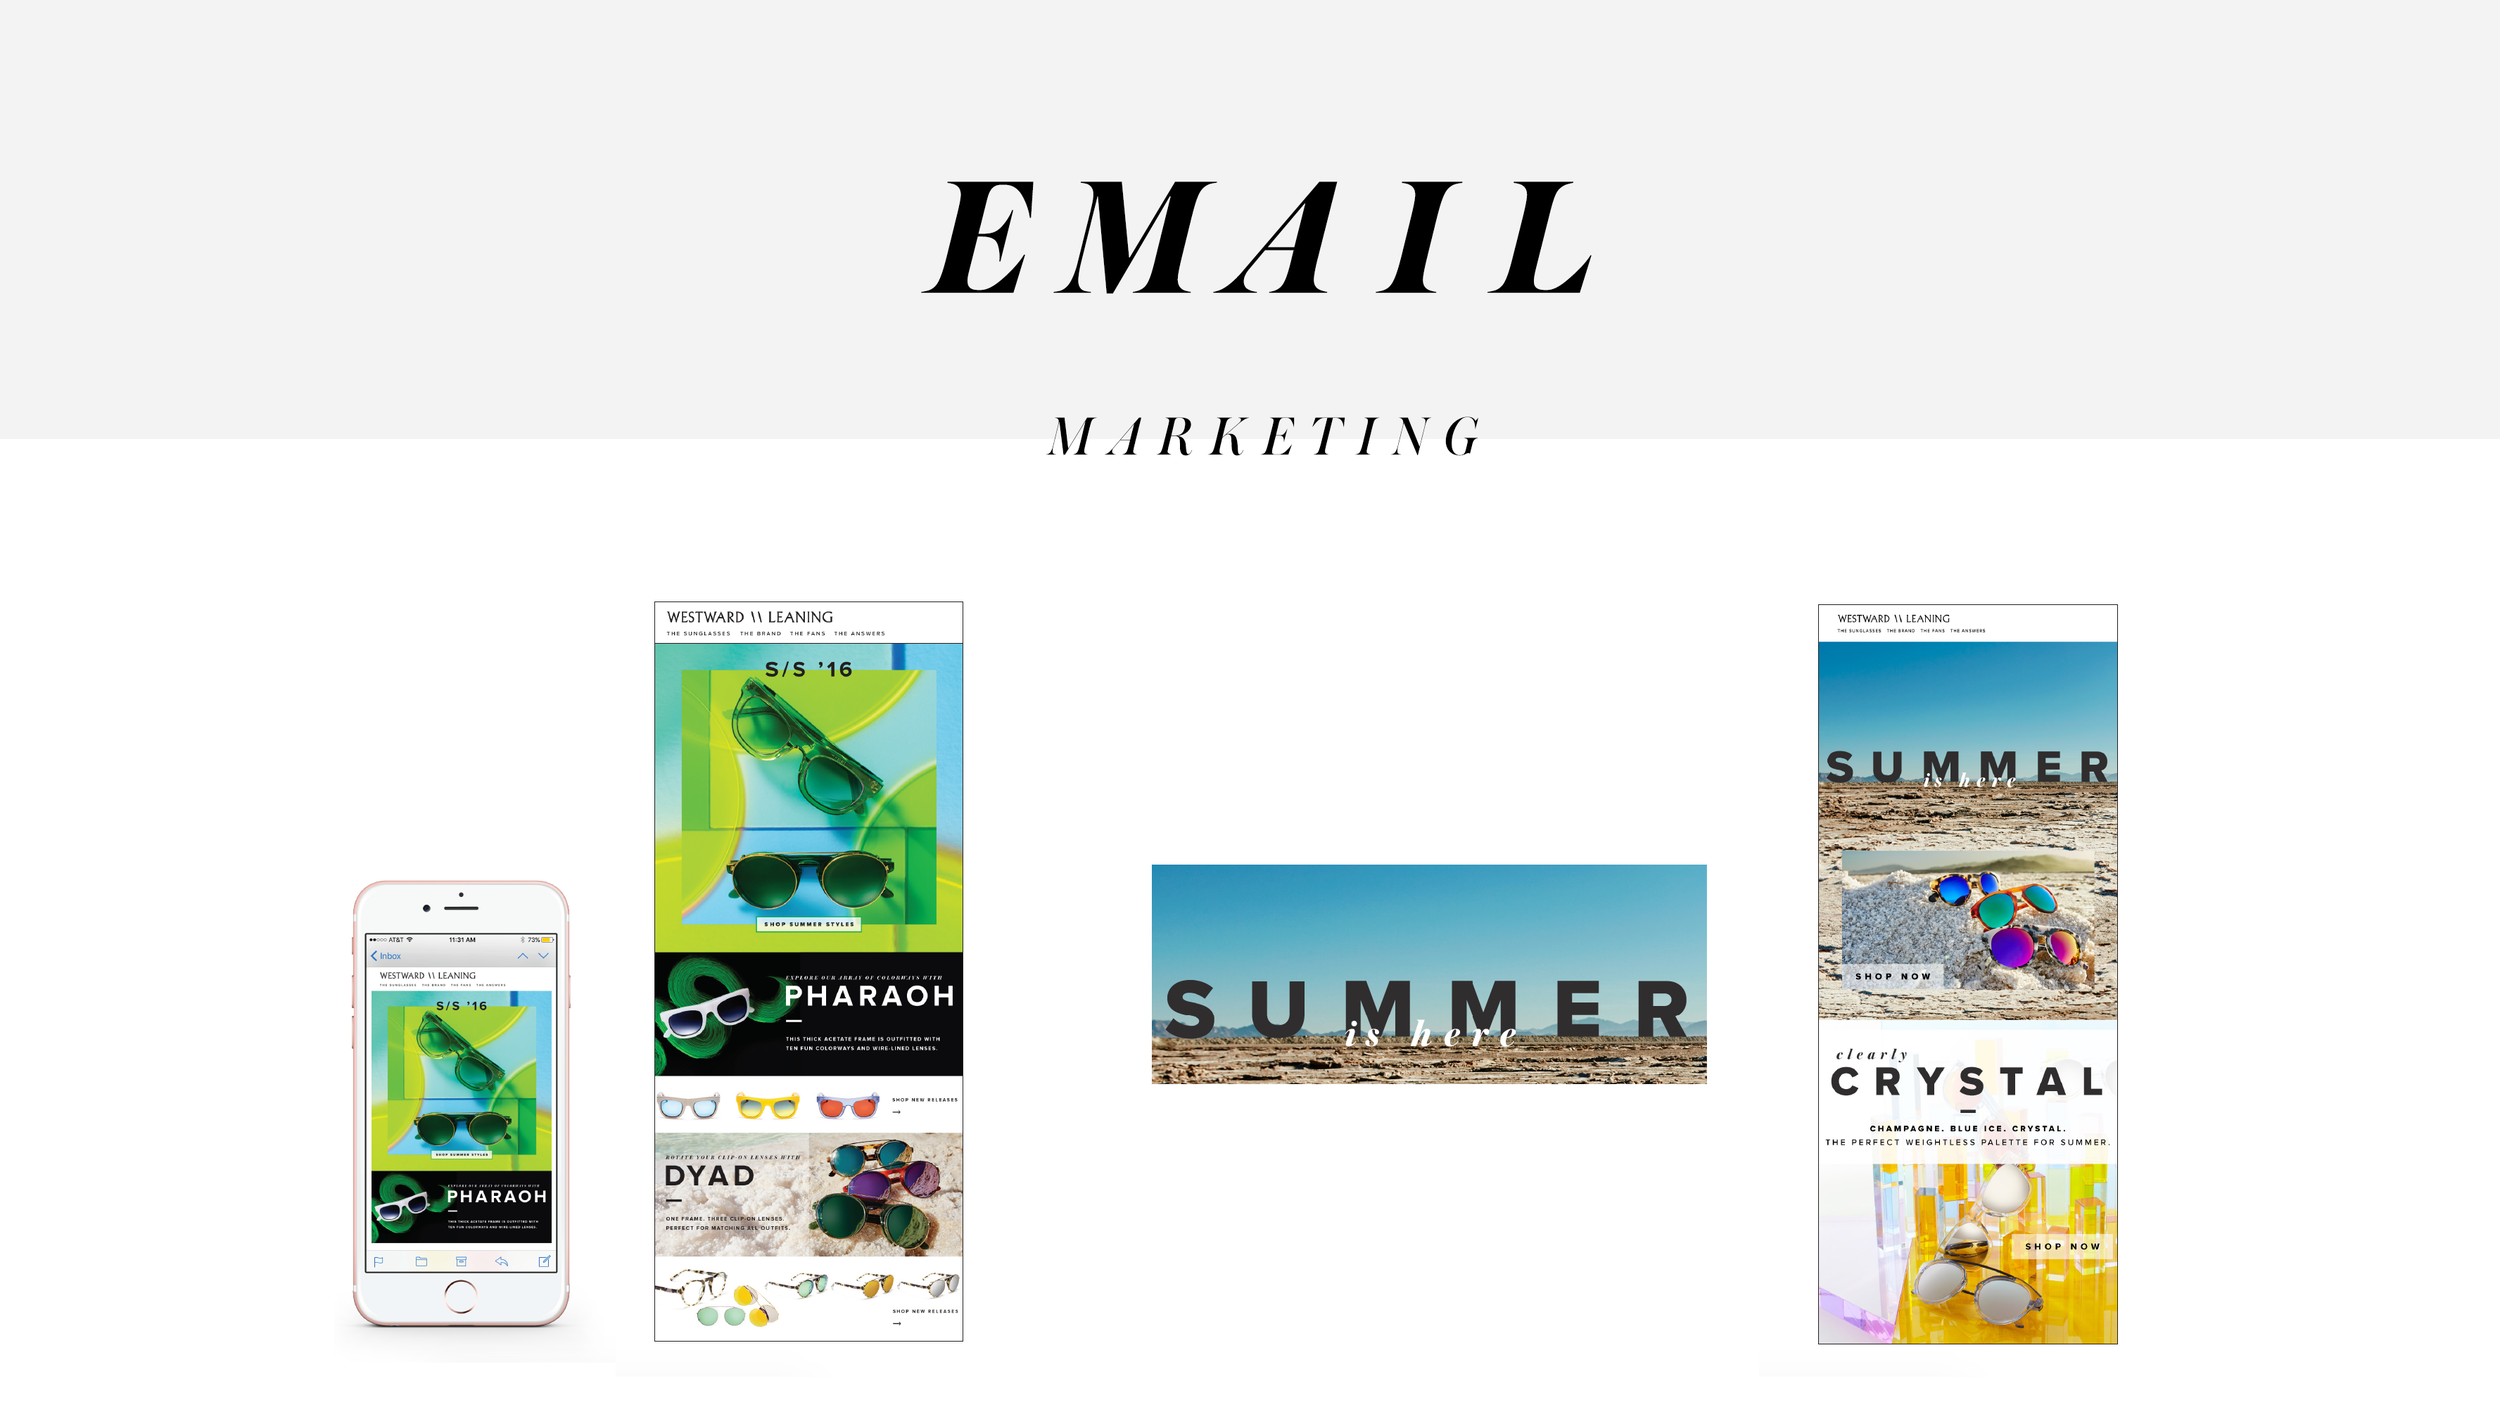 email-marketing.png